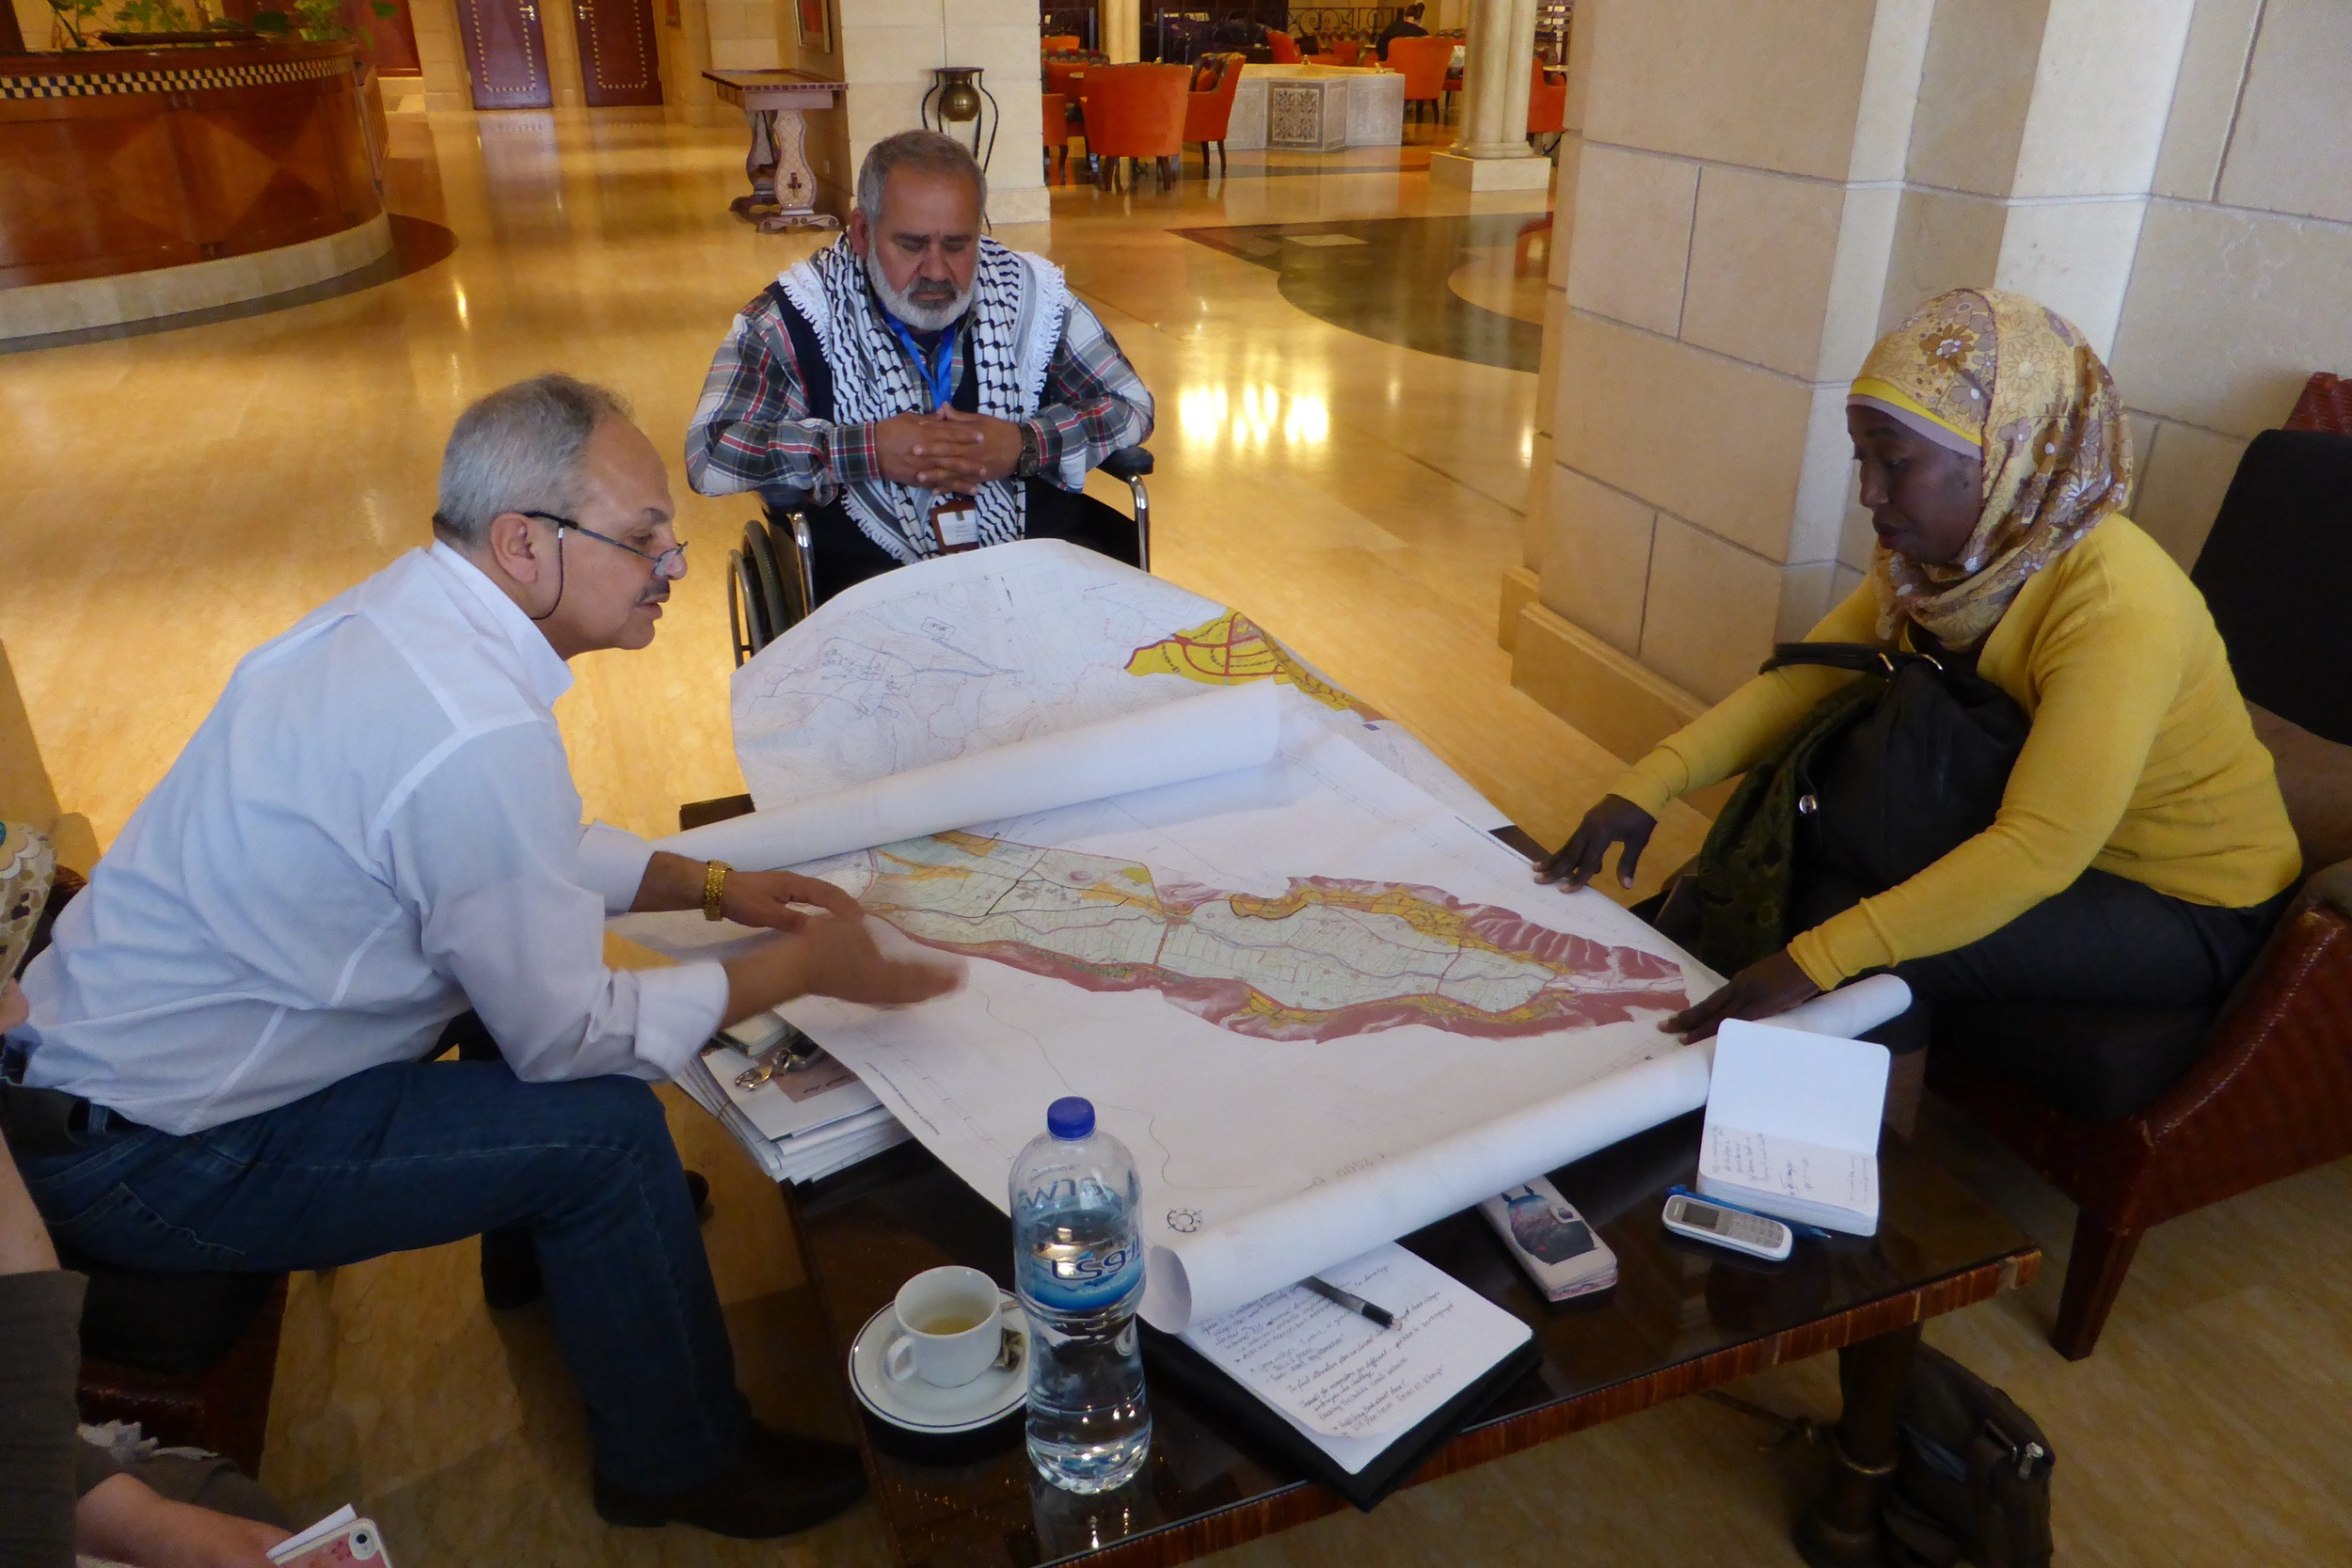 Haj Sami Sadeq, mayor of Al Aqaba, and a village council member from another village, meet with Dr. Rassem Khamaisi, professor at Haifa university and planner with the International Peace and Cooperation Center.